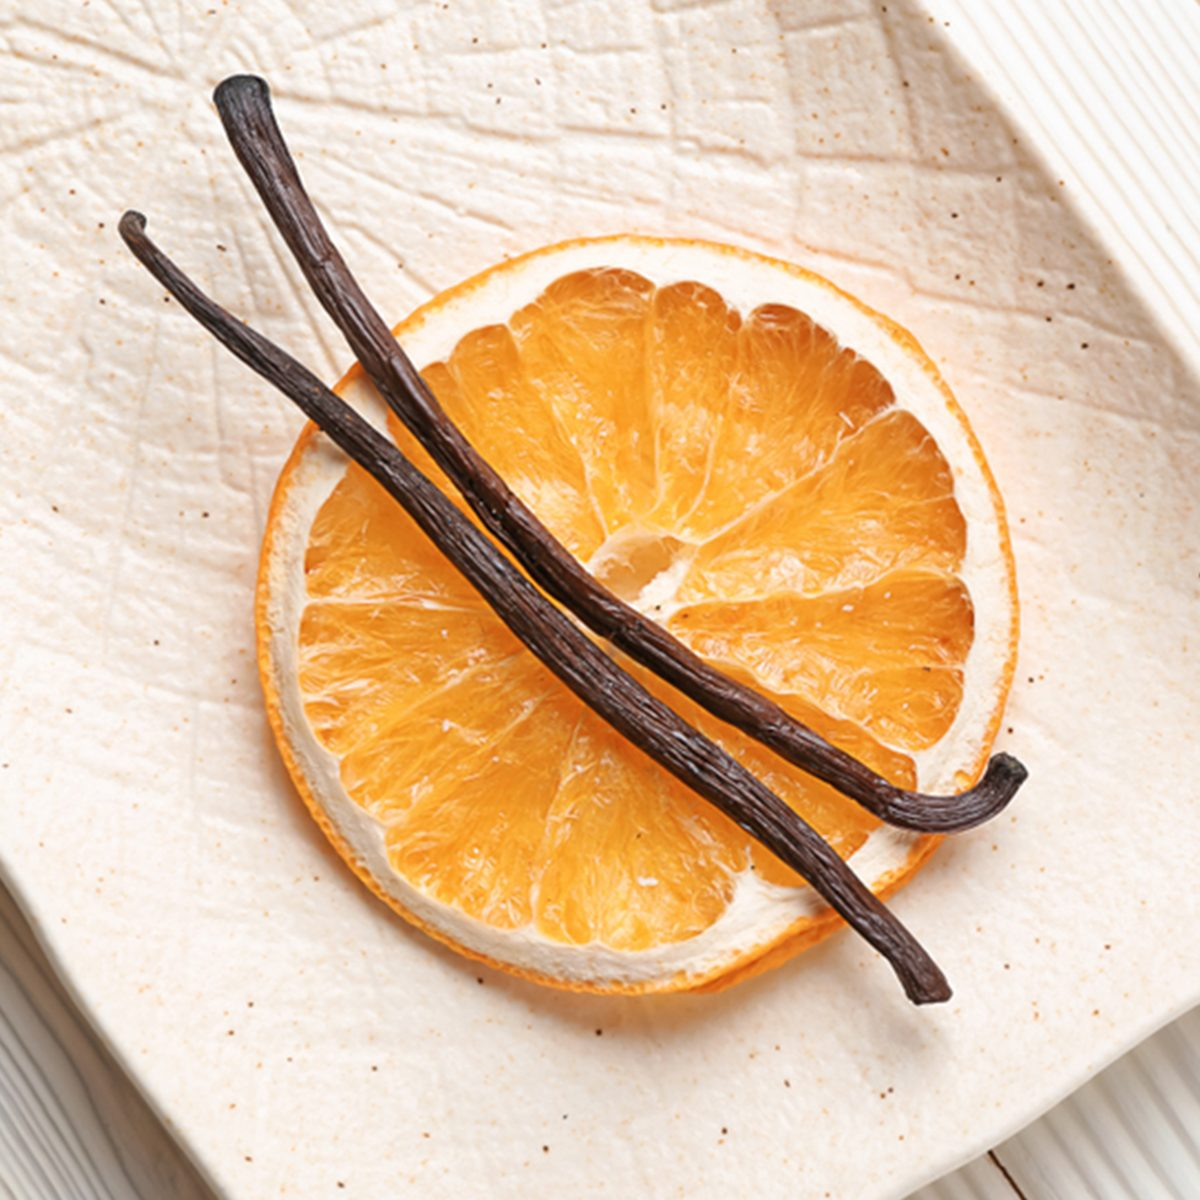 Plate with dry orange slice and aromatic vanilla sticks on white wooden background; Shutterstock ID 1283600635; Job (TFH, TOH, RD, BNB, CWM, CM): TOH